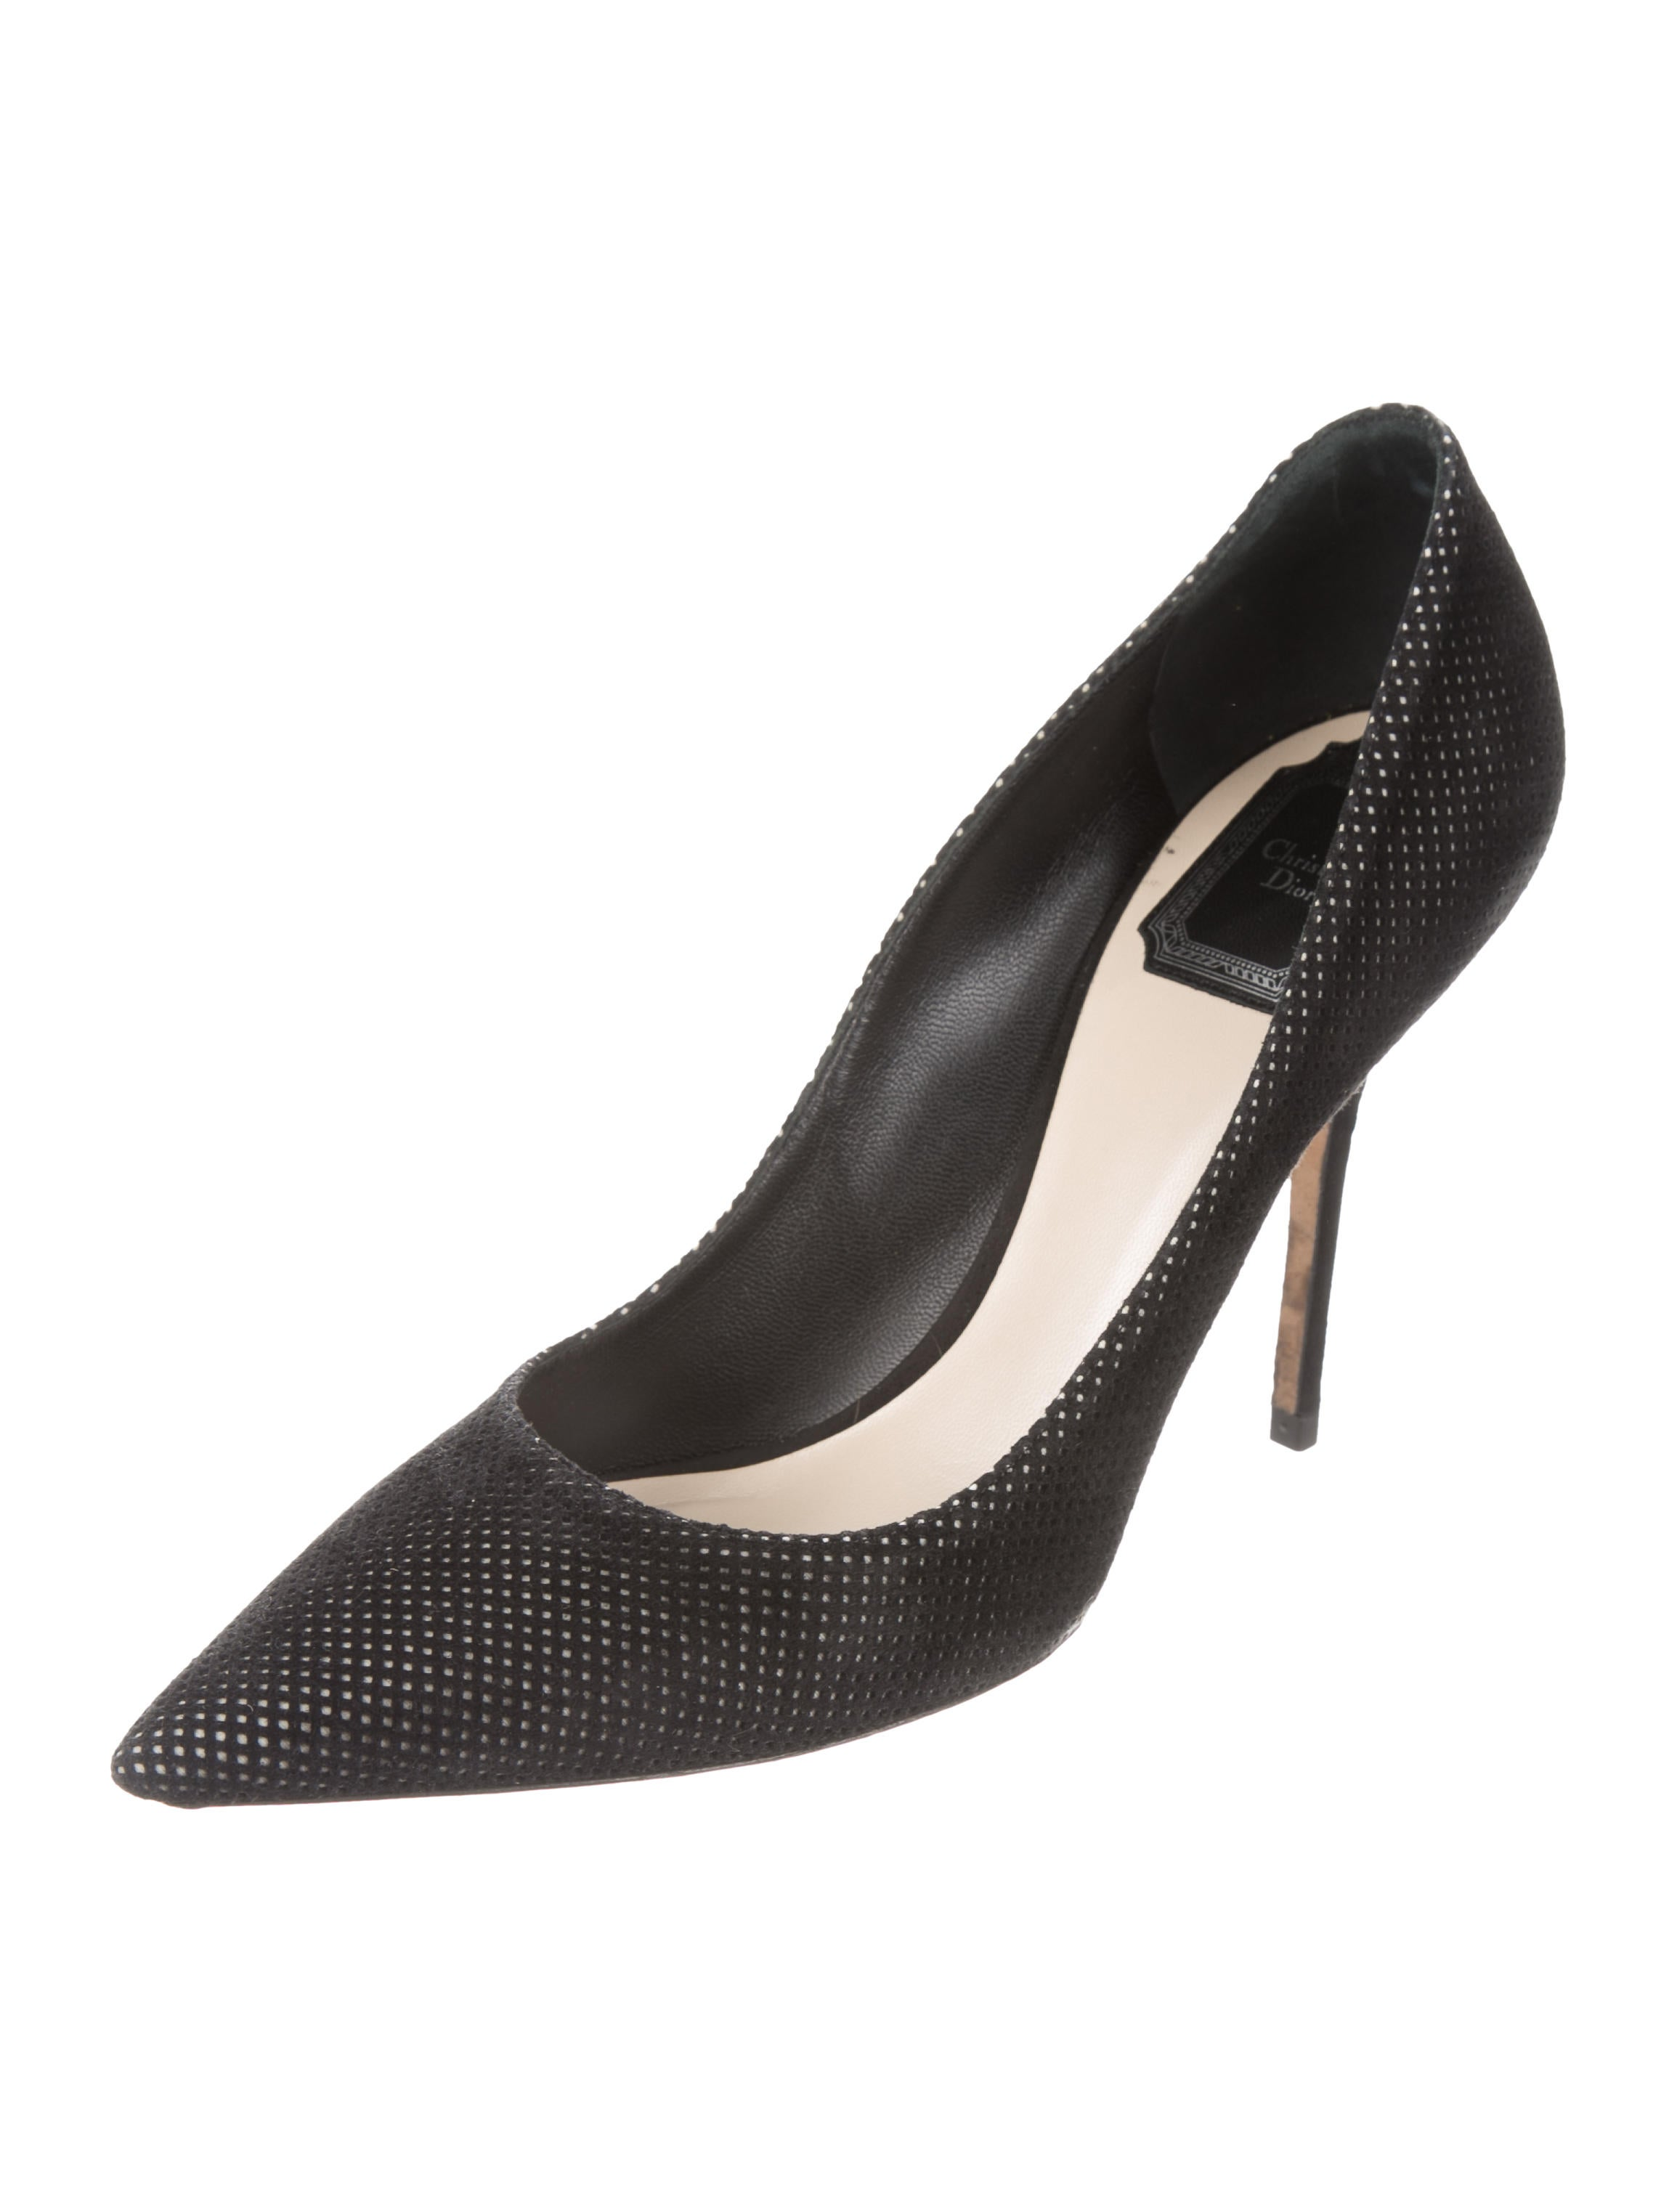 Christian Dior Cherie Perforated Pumps discount cost explore for sale cost online 12Y2oDj